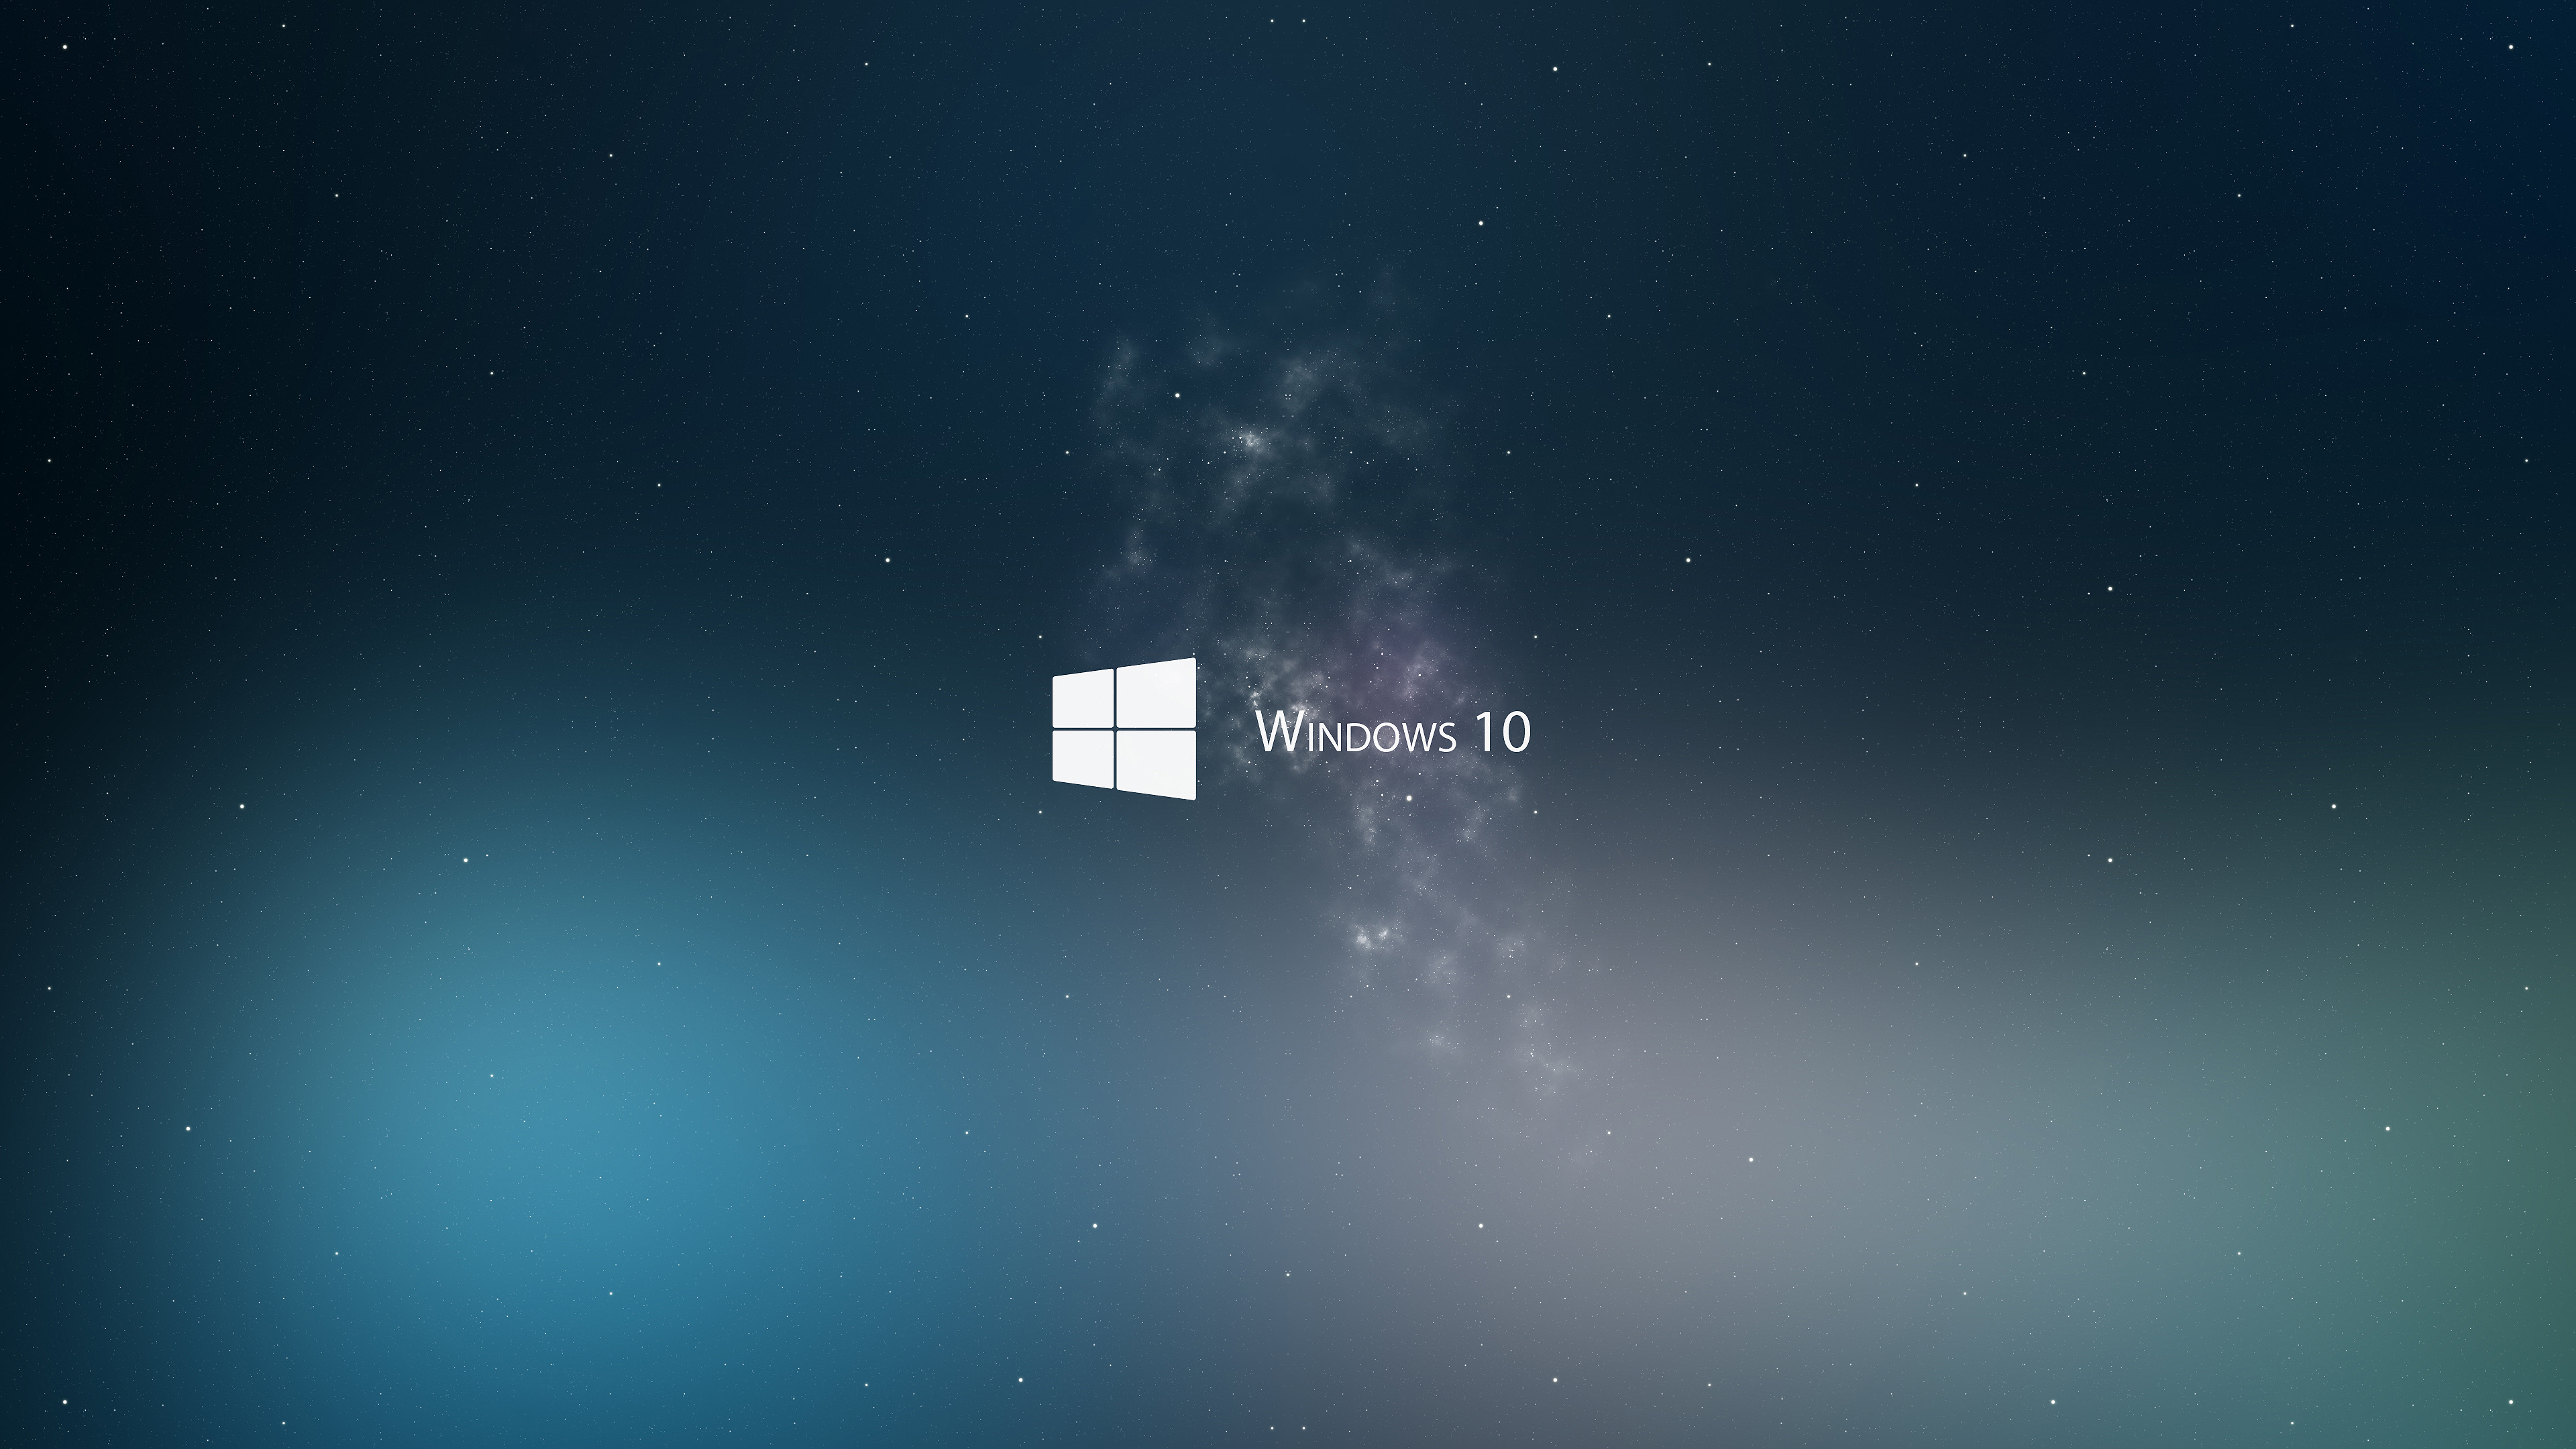 Download Windows 10 Wallpaper 48615 3840x2160 Px High